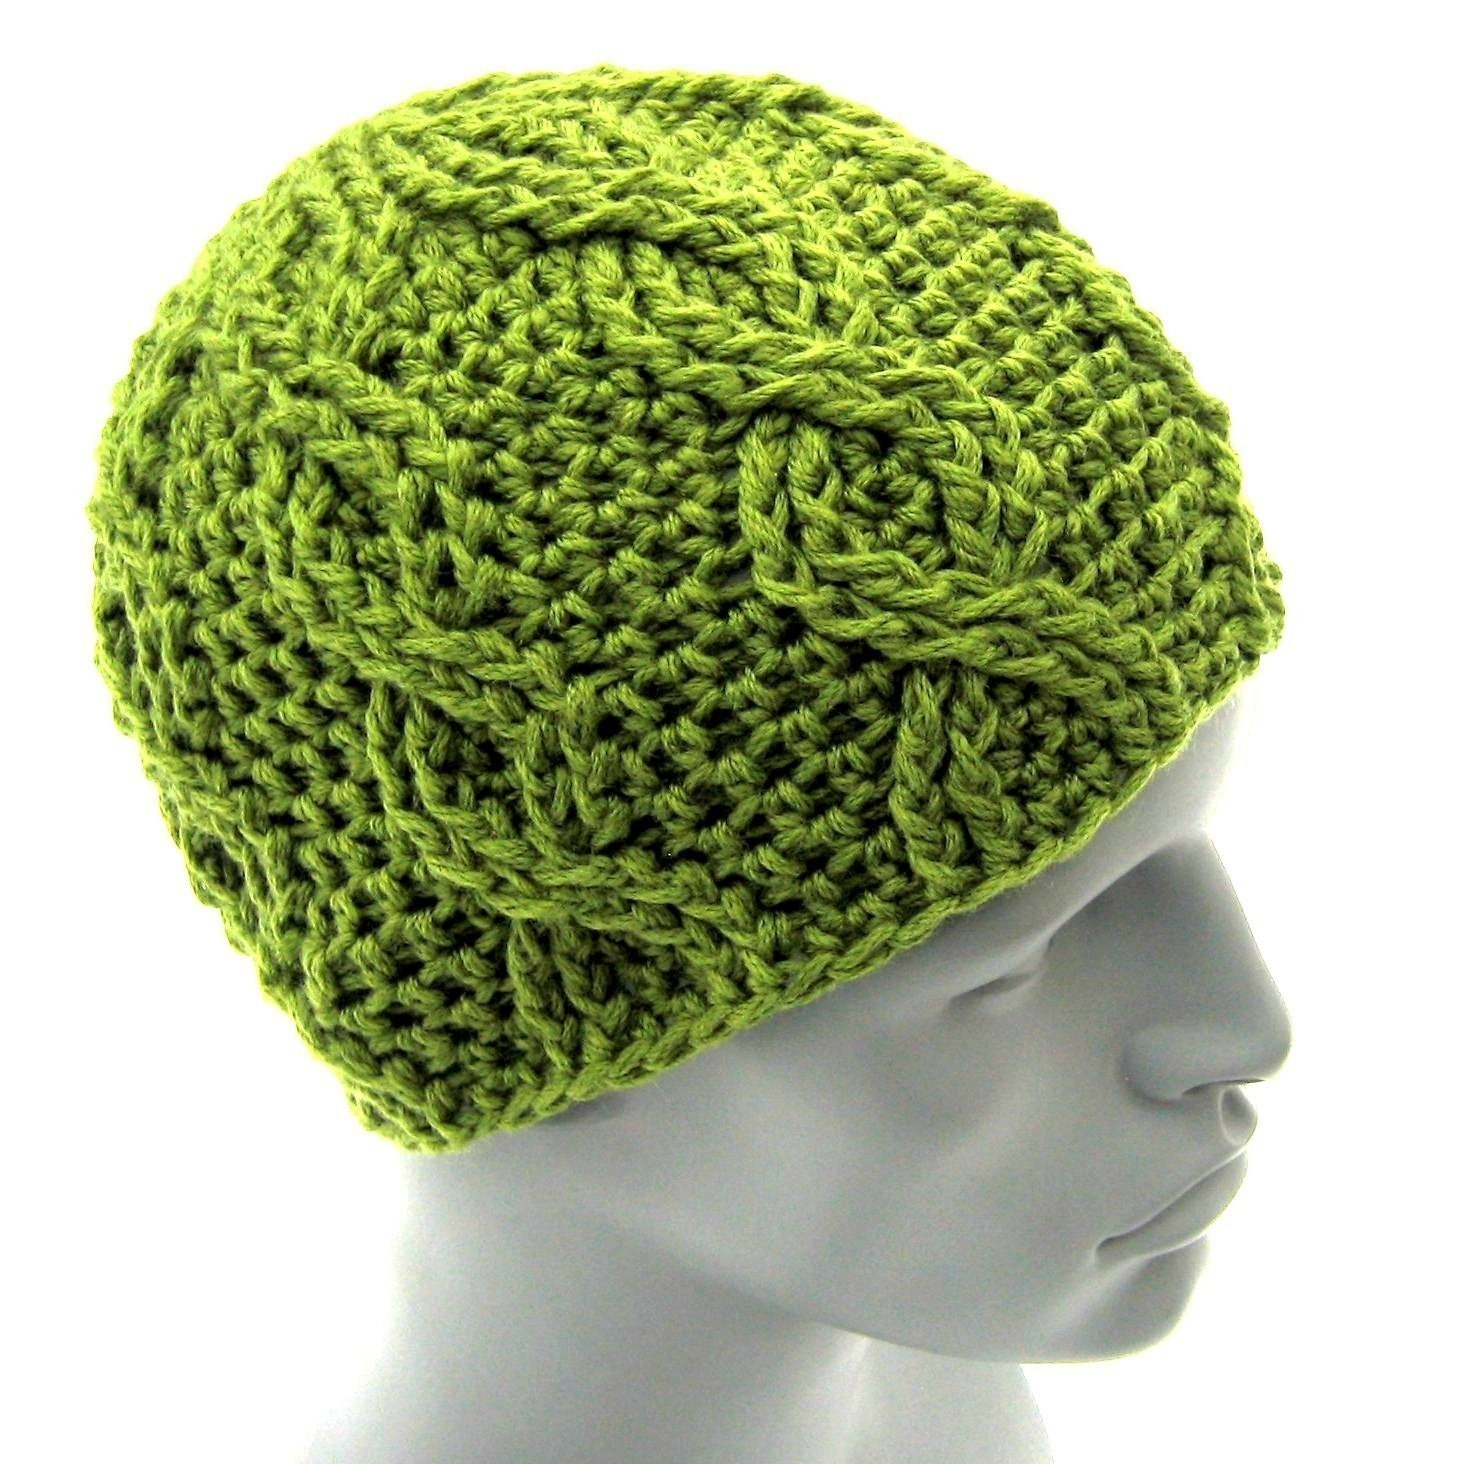 Cool Crochet Patterns : COOL CROCHET HAT PATTERNS Crochet Patterns